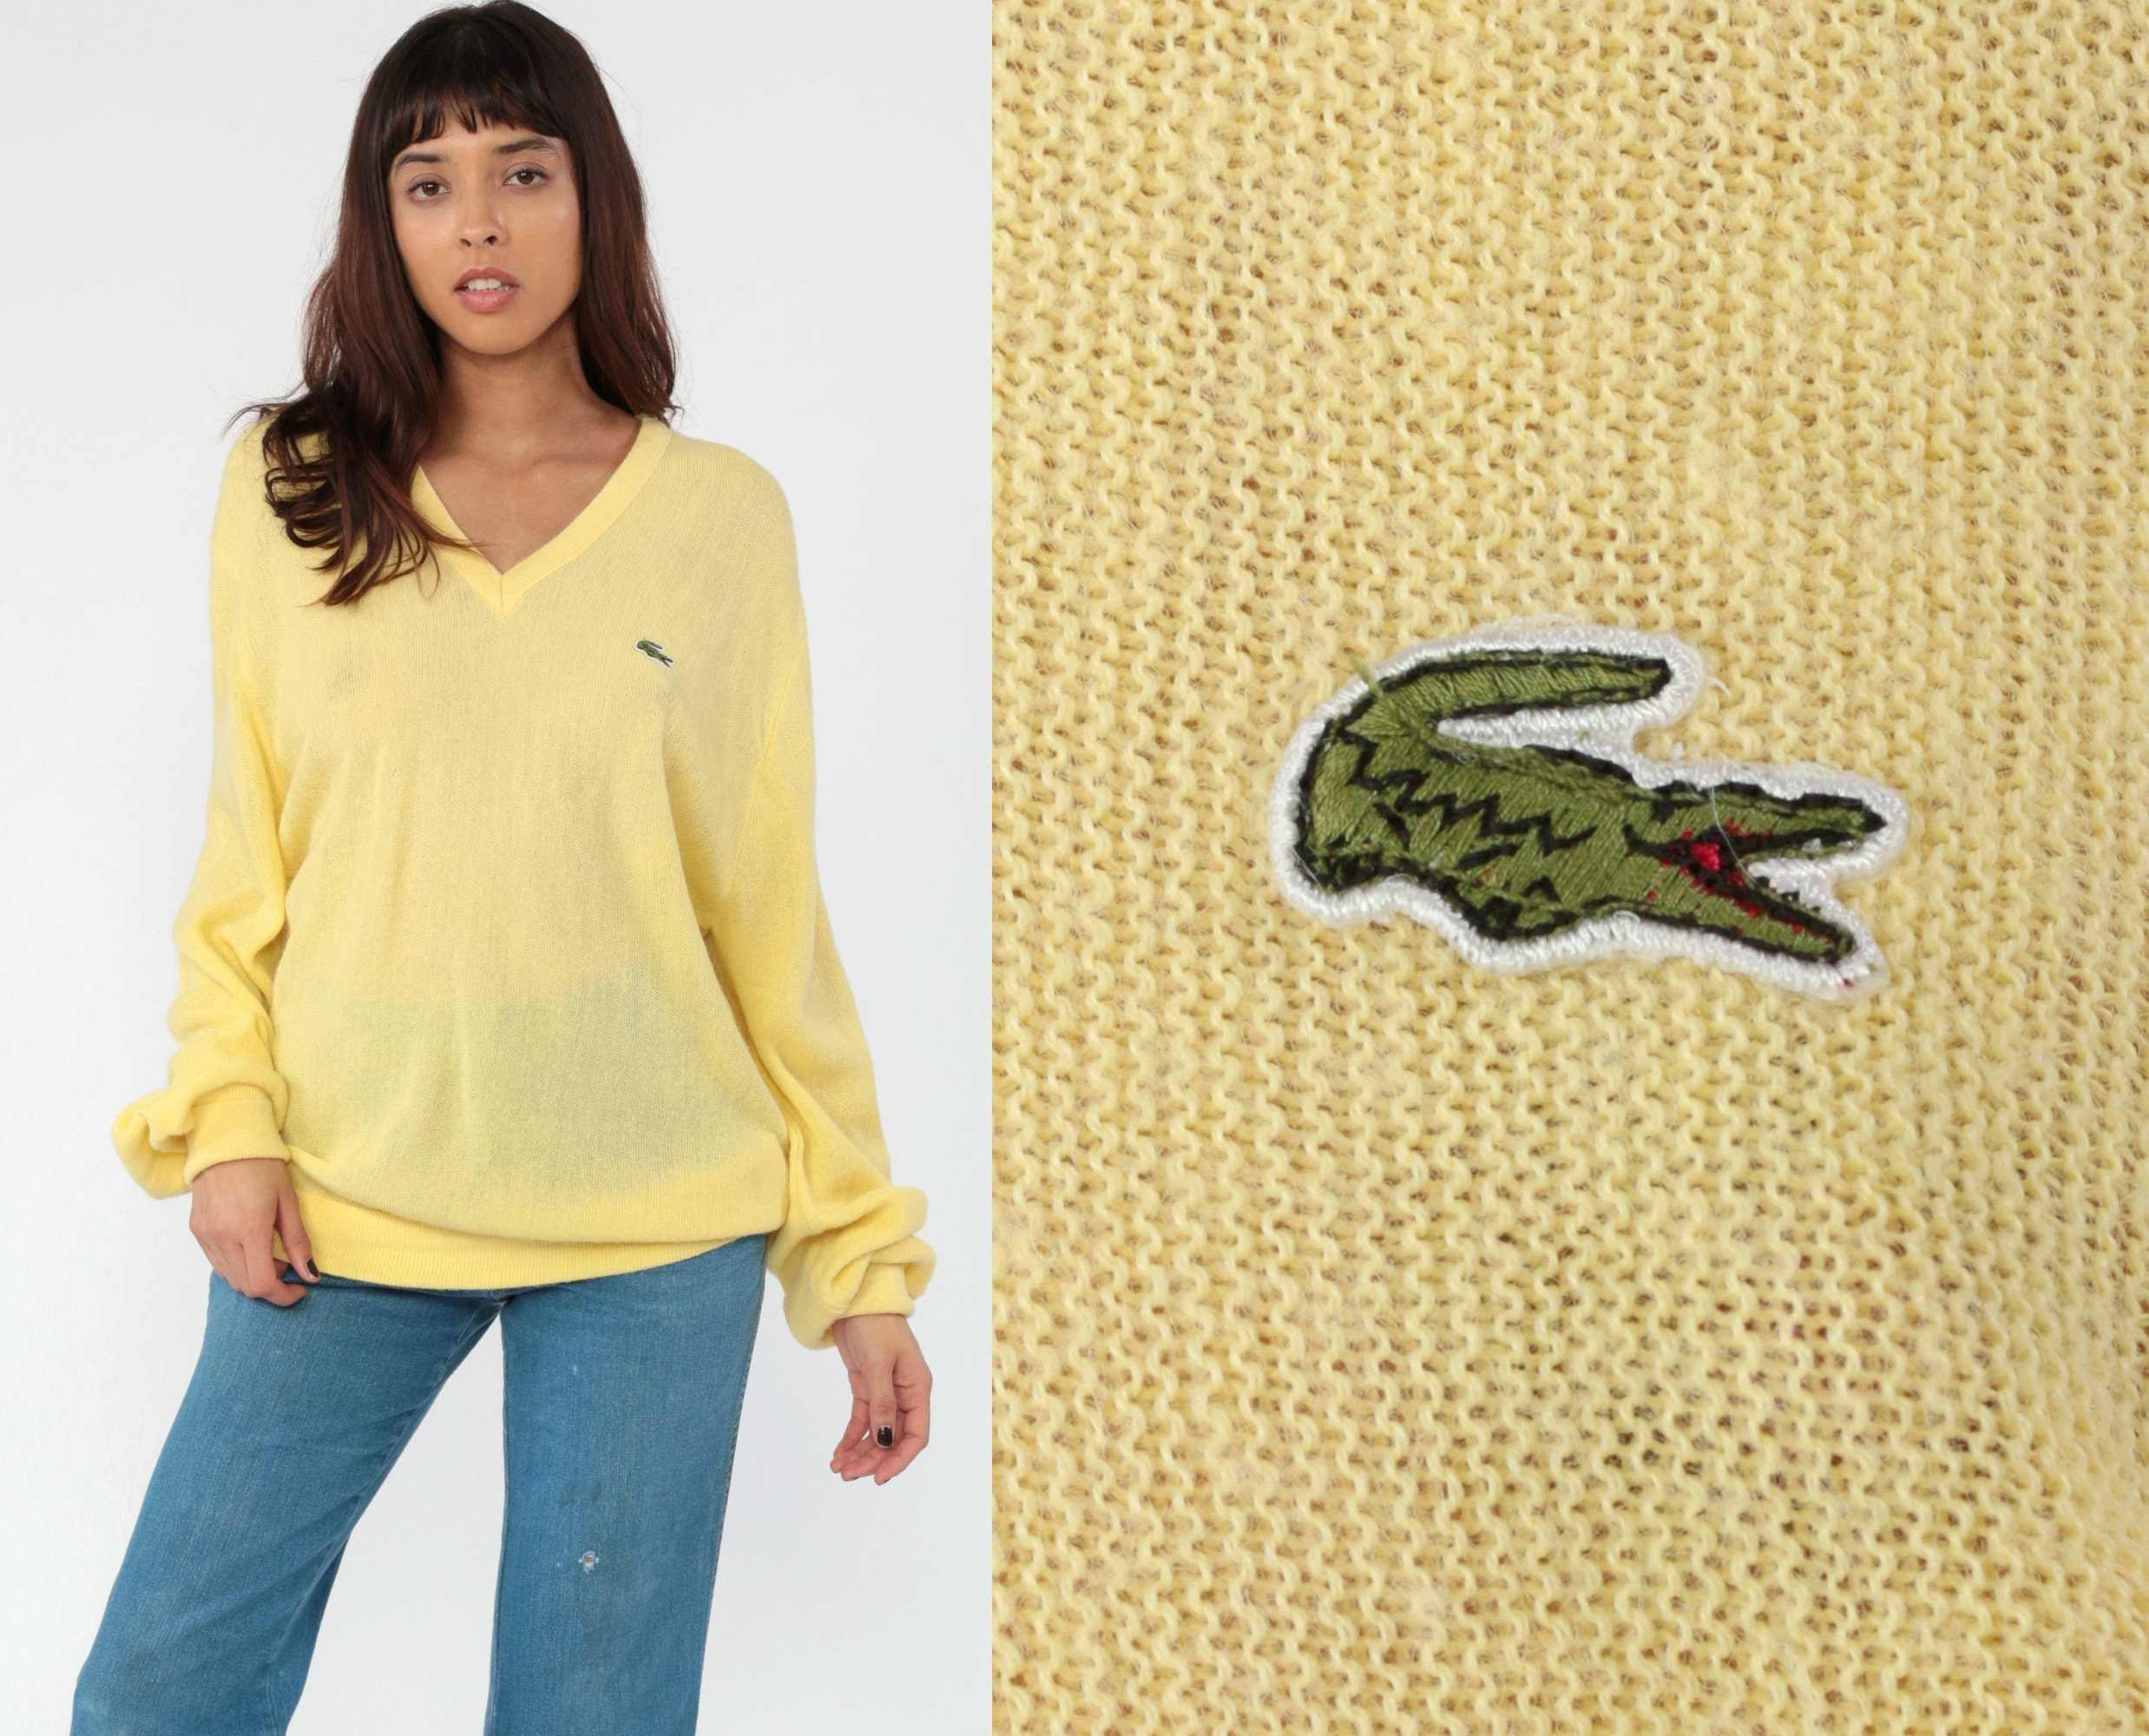 022275e19fc1a Yellow LACOSTE Sweater 80s Slouchy V Neck Izod Oversized Pullover Pastel  Vintage 1980s Preppy Slouch Crocodile Nerd Plain Medium Large